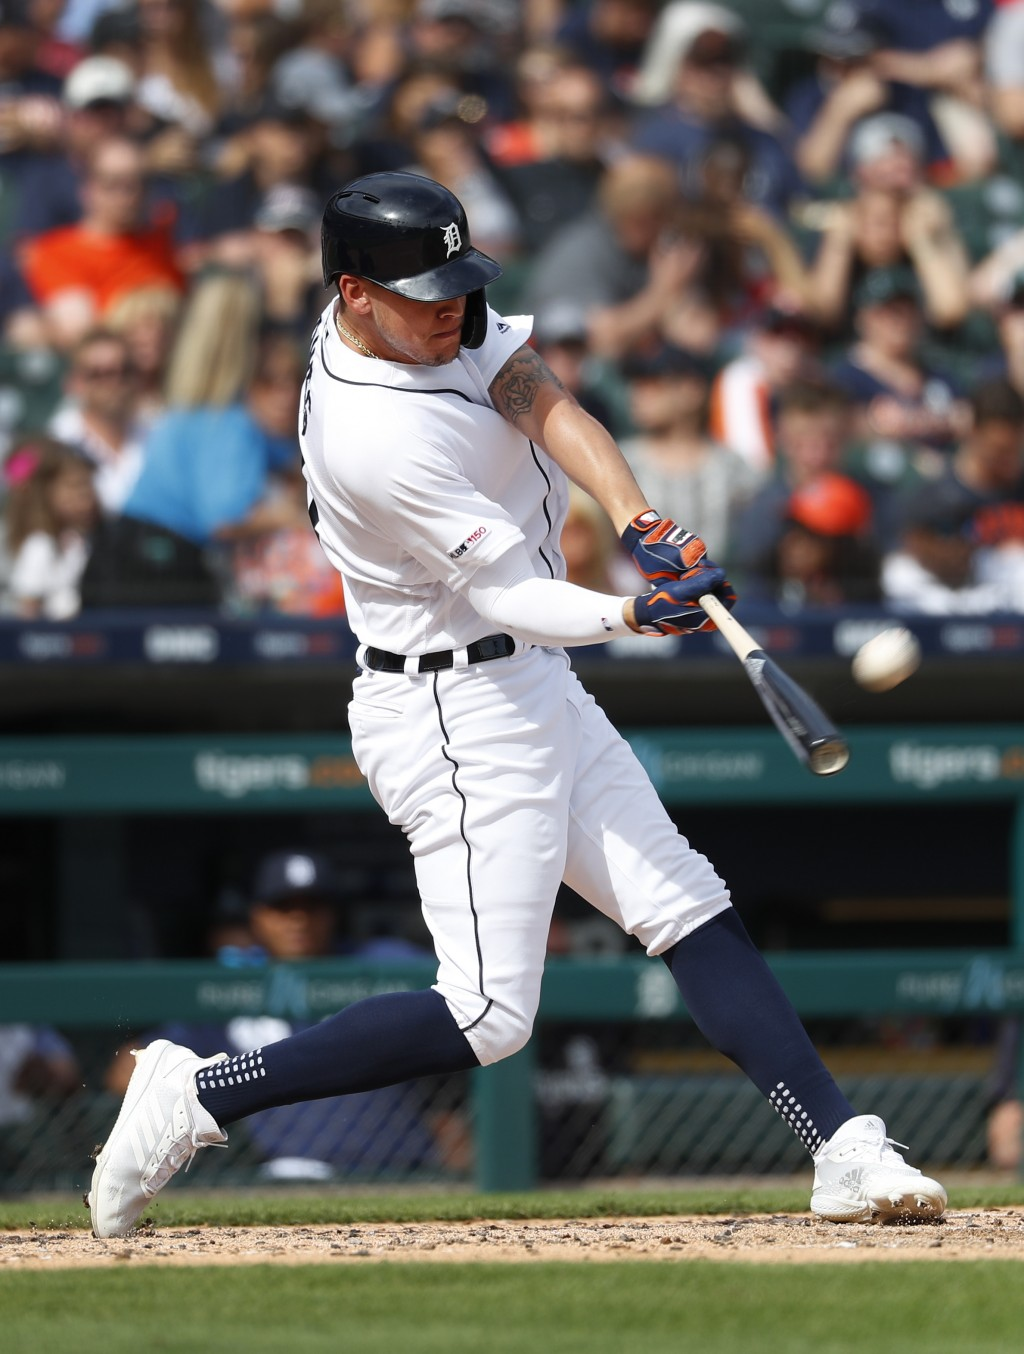 Detroit Tigers' JaCoby Jones hits a three-run home run in the second inning of a baseball game against the Minnesota Twins in Detroit, Saturday, June